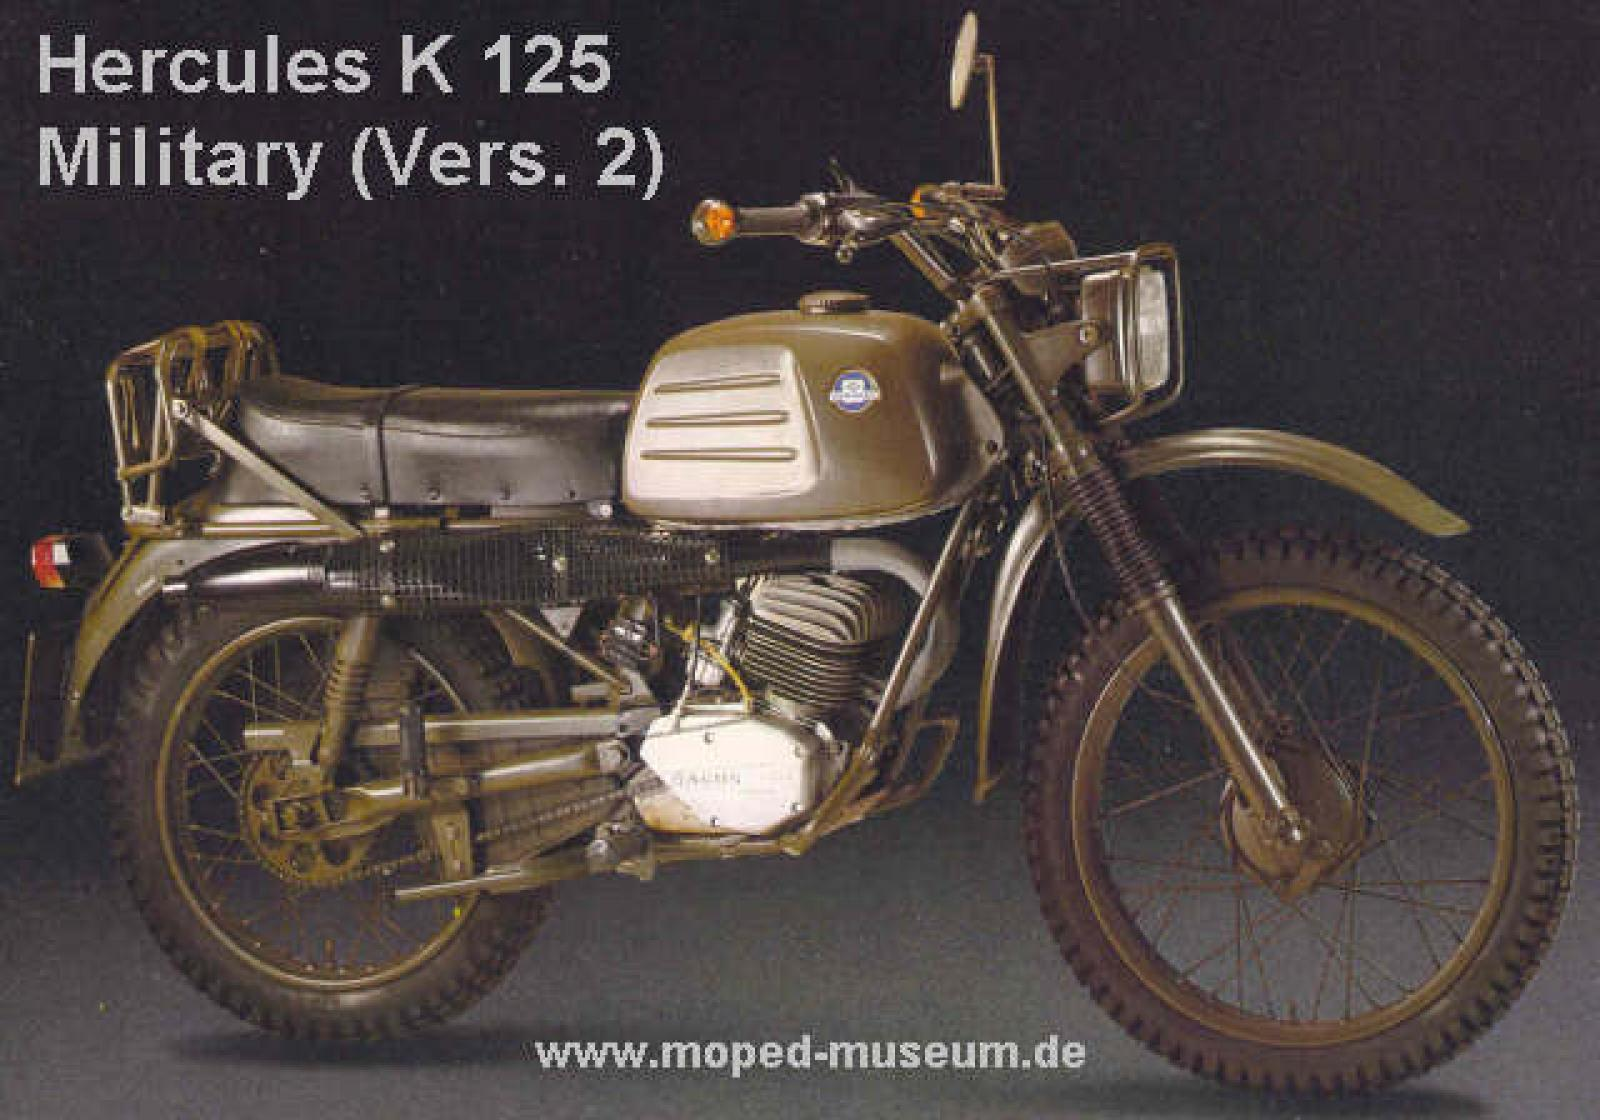 Hercules K 125 Military 1975 images #74412